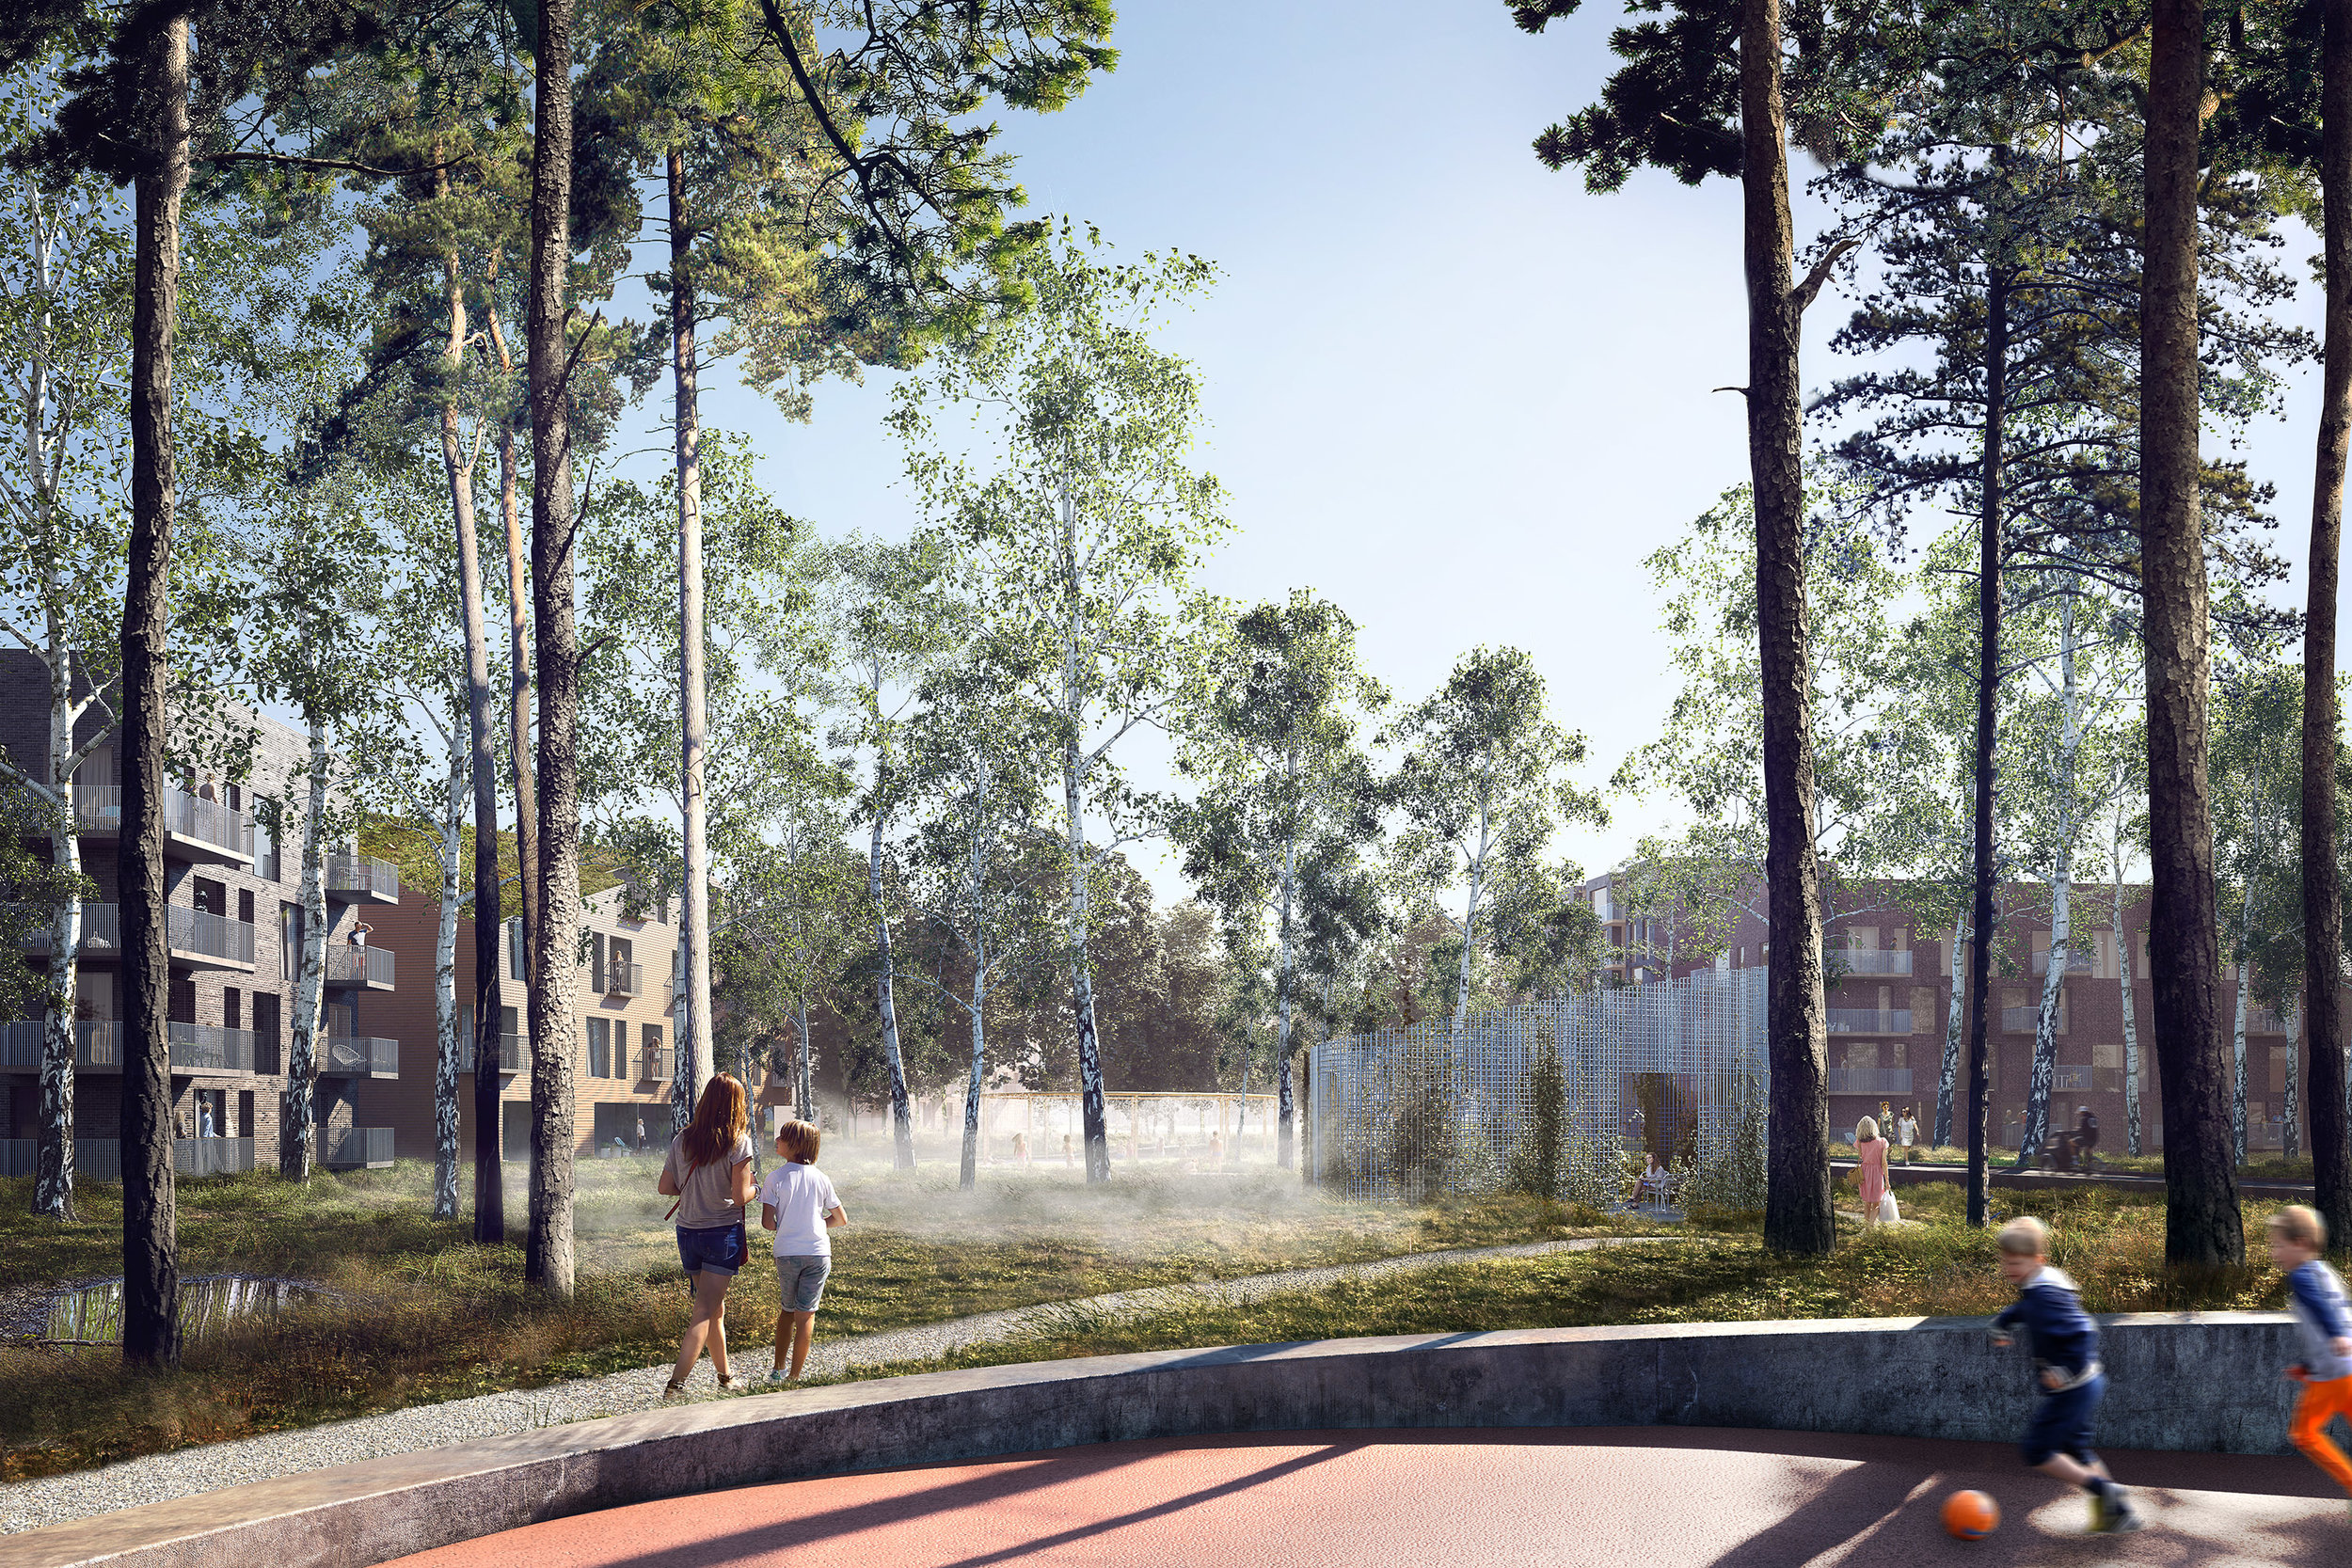 Slaughterhouse. Competition entry of a residential area in Hoslstebro, DK